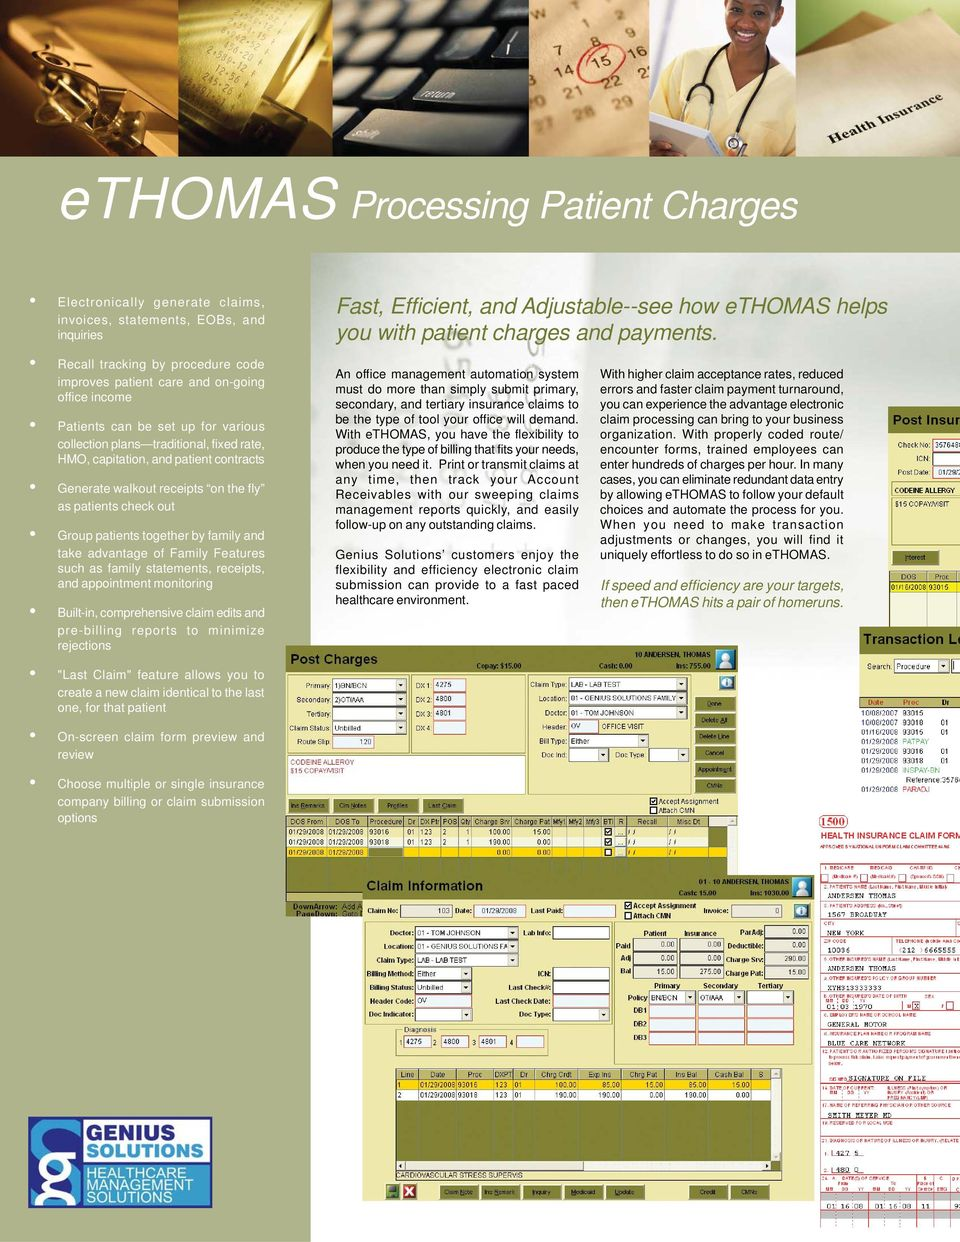 Recall tracking by procedure code improves patient care and on-going office income Patients can be set up for various collection plans traditional, fixed rate, HMO, capitation, and patient contracts